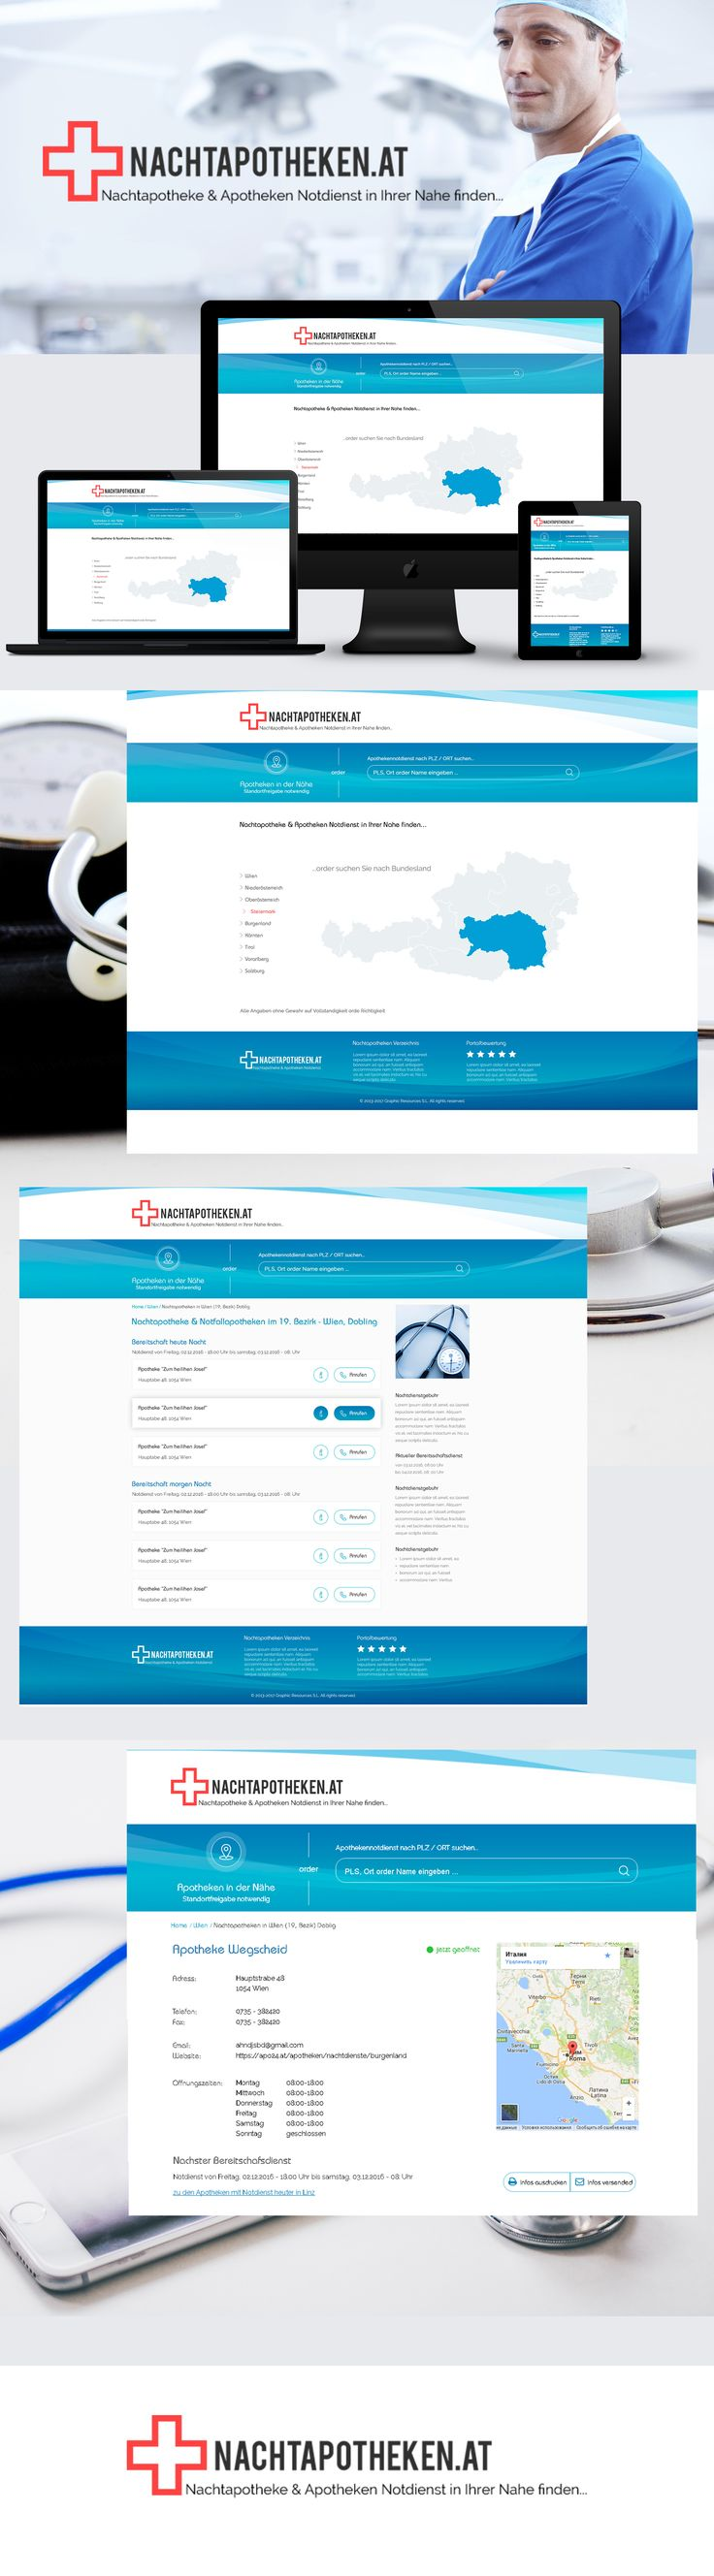 "Check out my @Behance project: ""Nachtapoteken - service to find available pharmacies"" https://www.behance.net/gallery/55216205/Nachtapoteken-service-to-find-available-pharmacies"